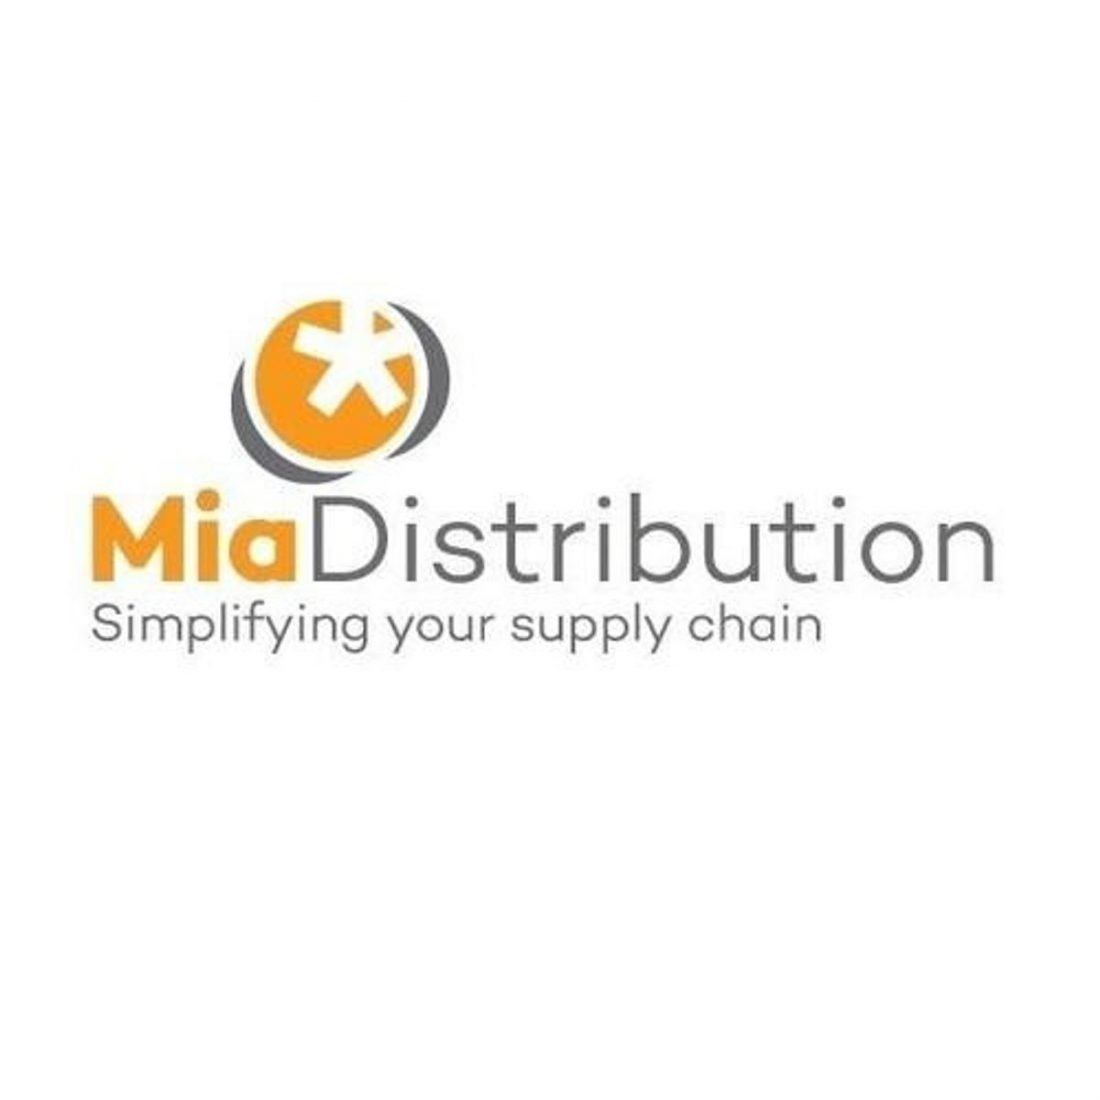 Mia Distribution Expects its enhanced partnership with Jabra to further its expansion in ANZ. (From WeFunder)